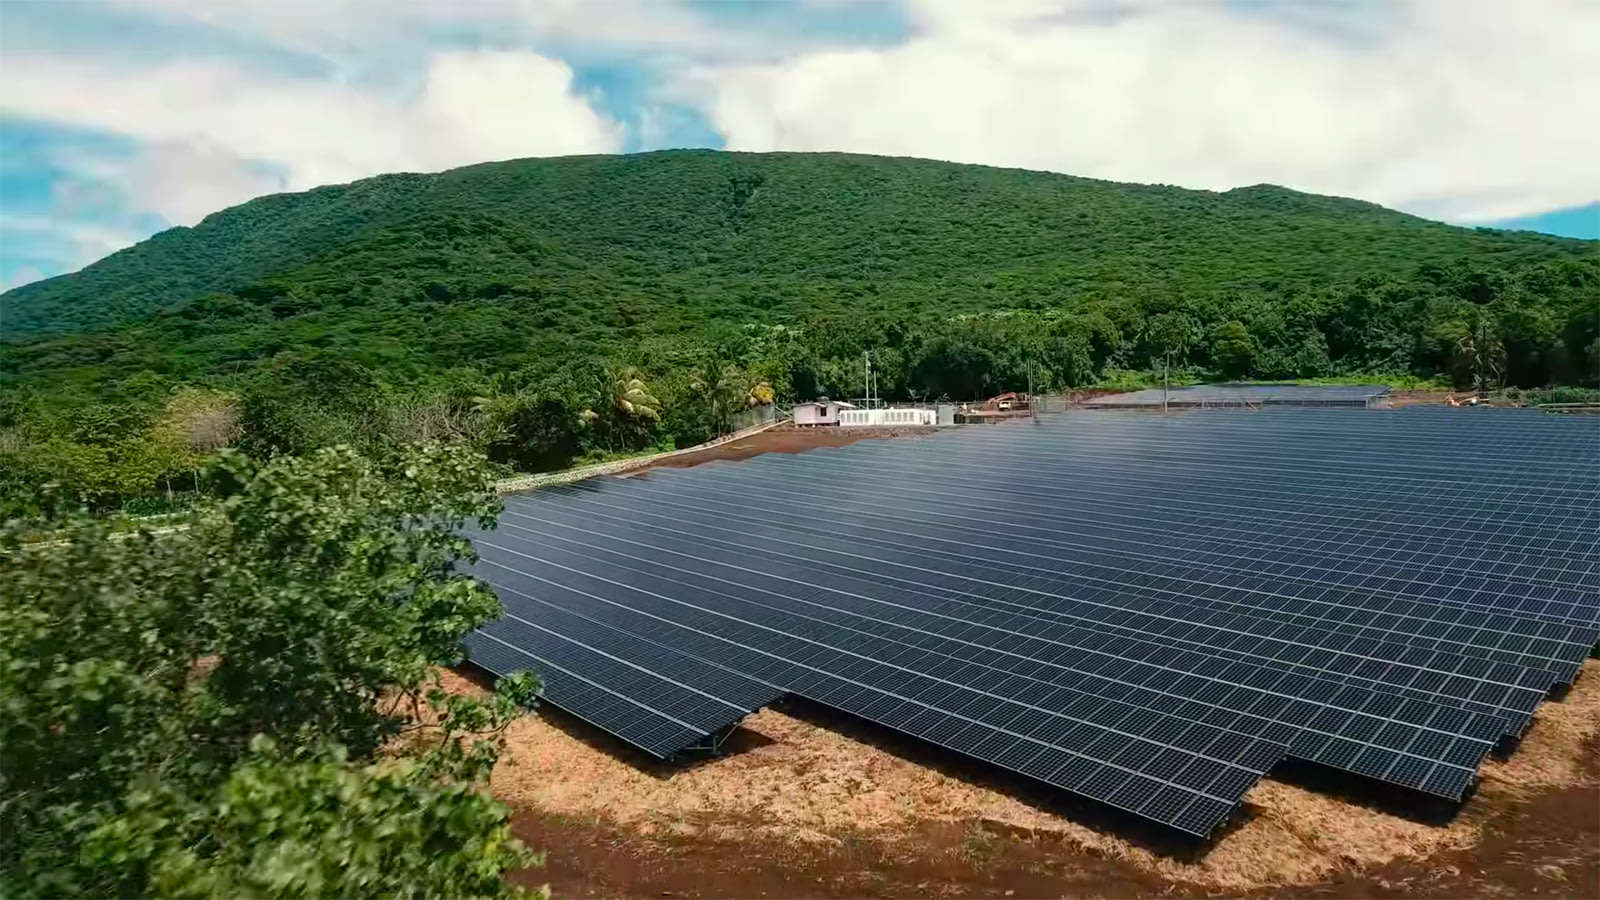 Solar Power On The Island Of Tau A Preliminary Appraisal Energy Fair Project Idea Calculation Exercise For Battery Charger Image Below Shows Installation Panels Are Fixed And Oriented At Shallow Angle To North Presumably Or Around 14 Degrees